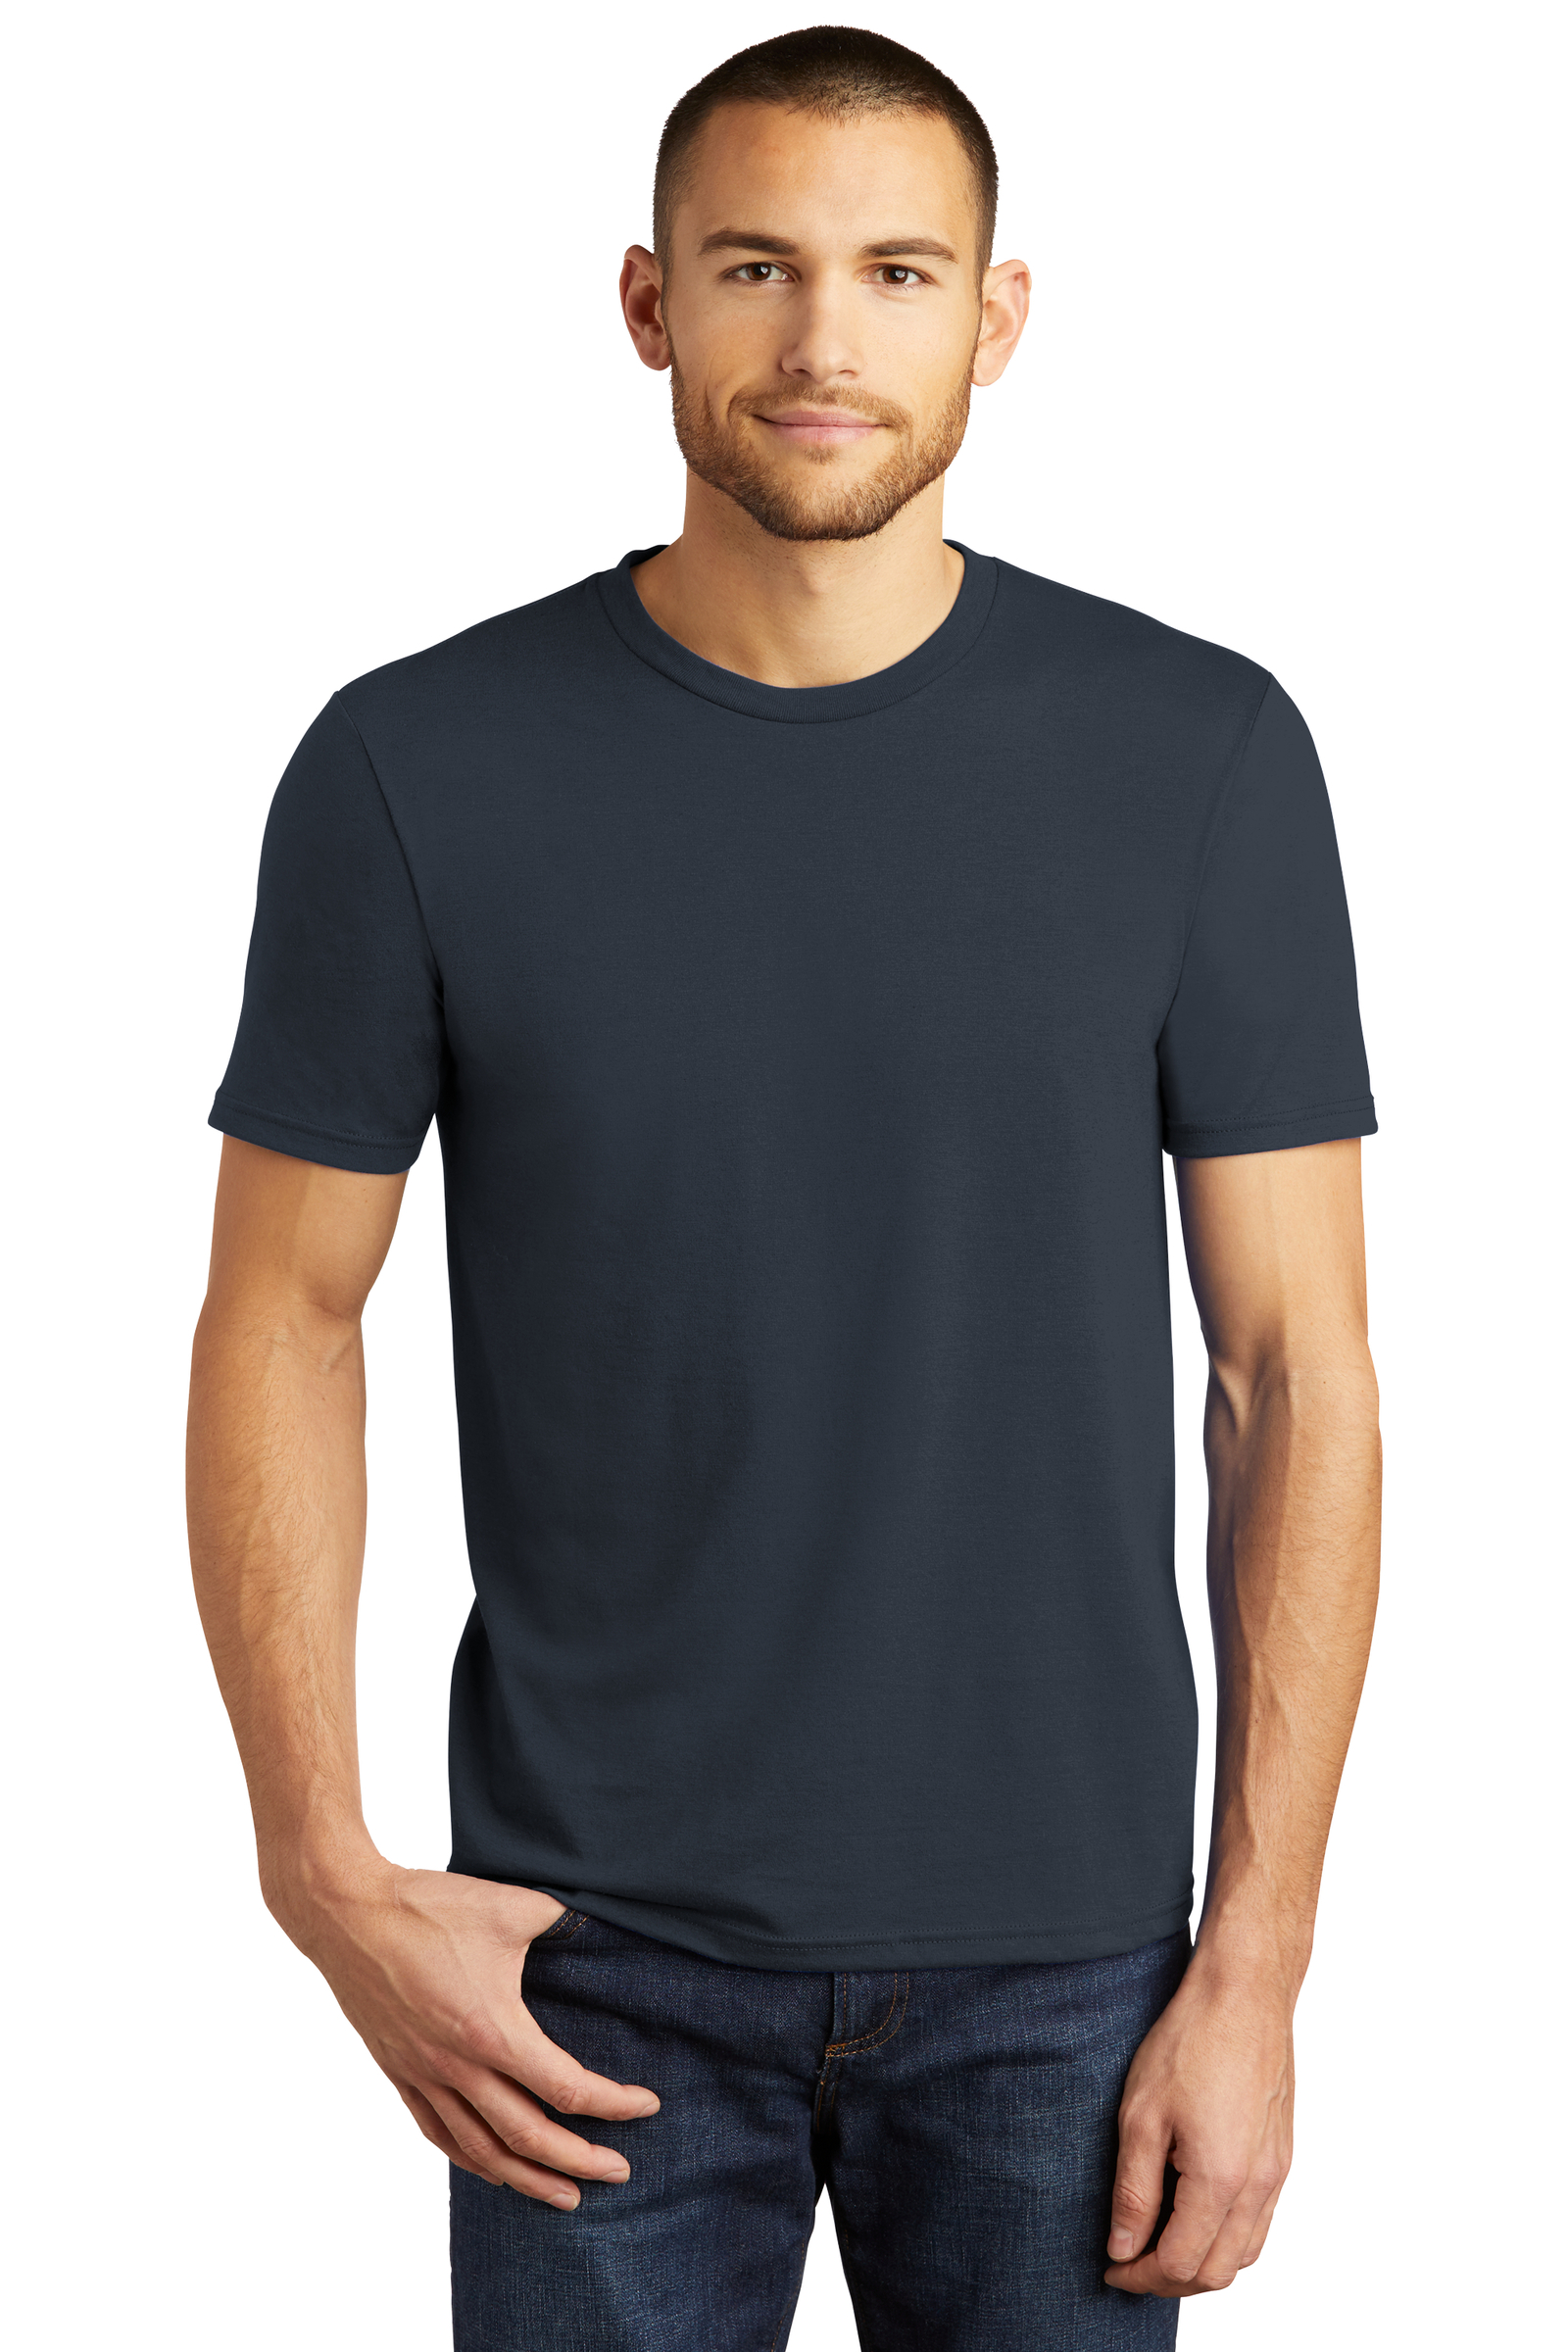 District Embroidered Men's Perfect Tri-Blend Crew Tee